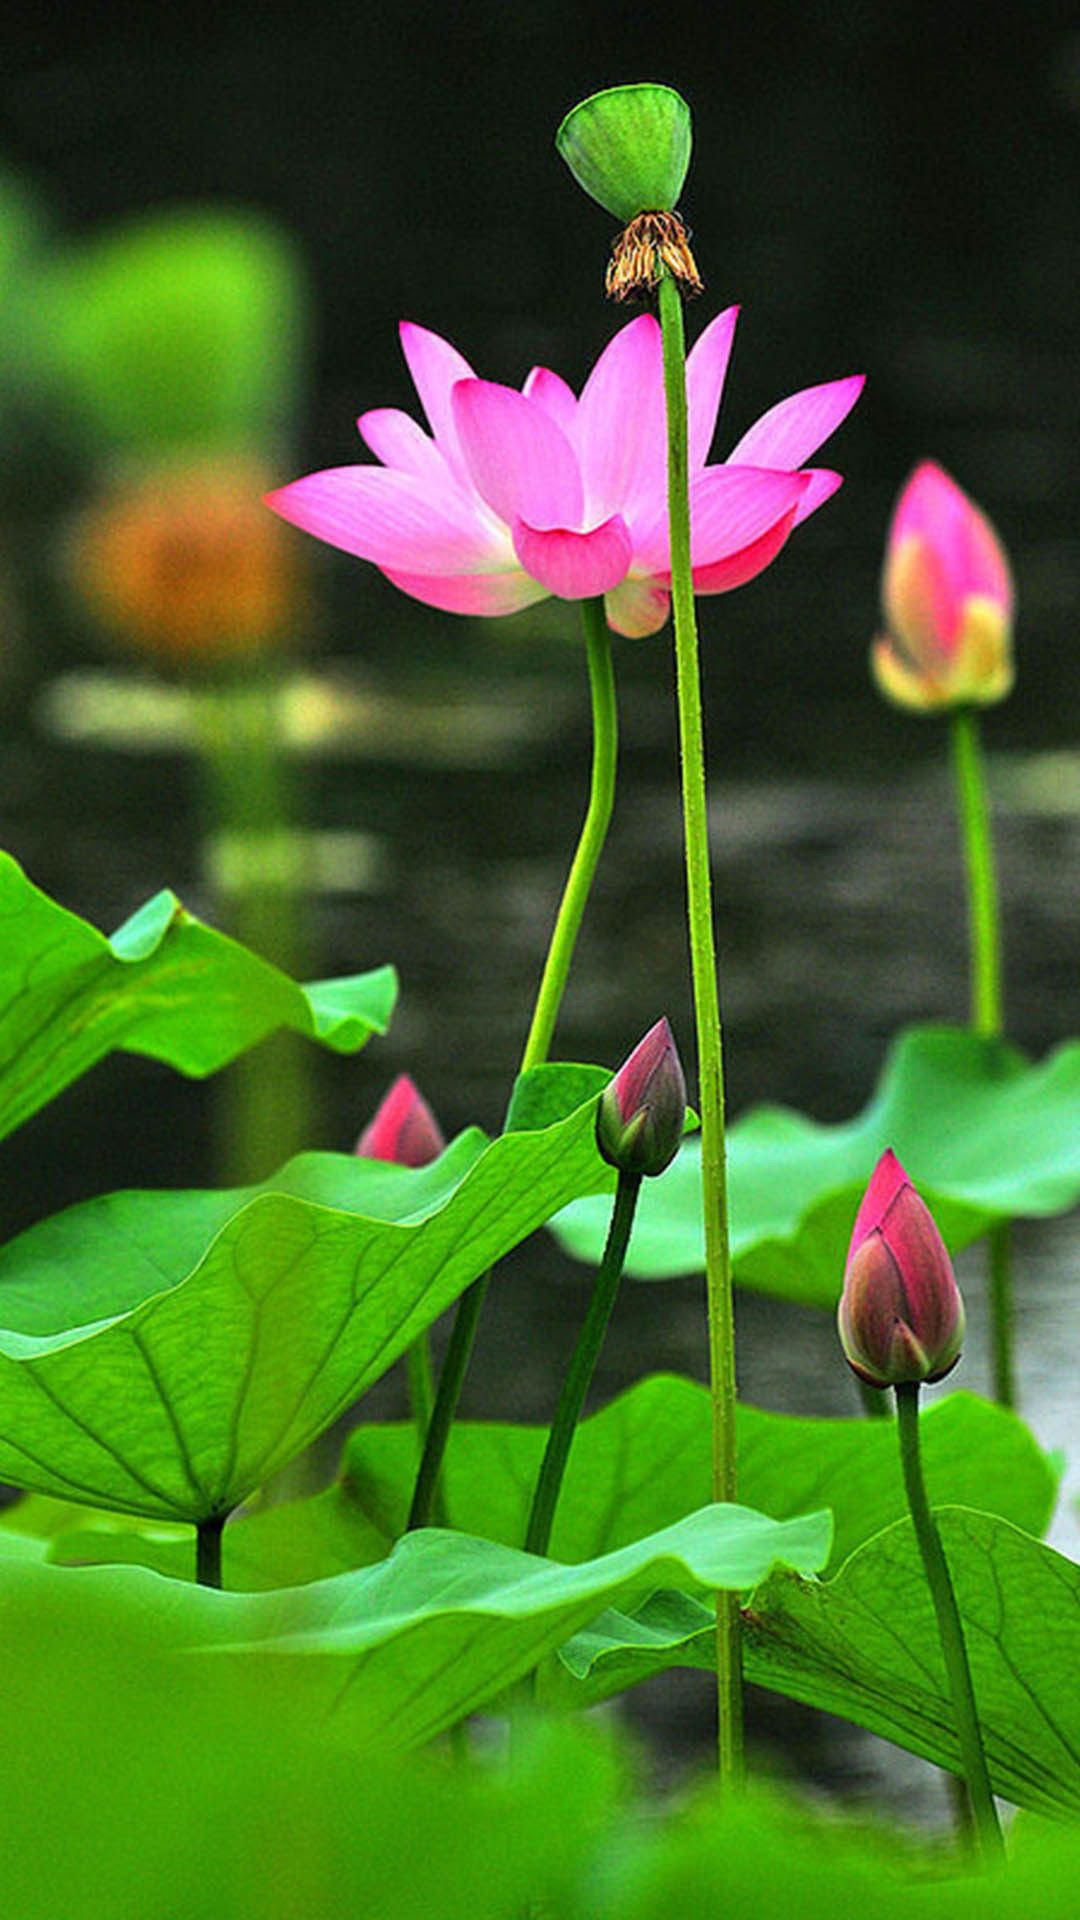 Pin By Trung Tam Udic On Sen Pinterest Lotus Flowers And Gardens